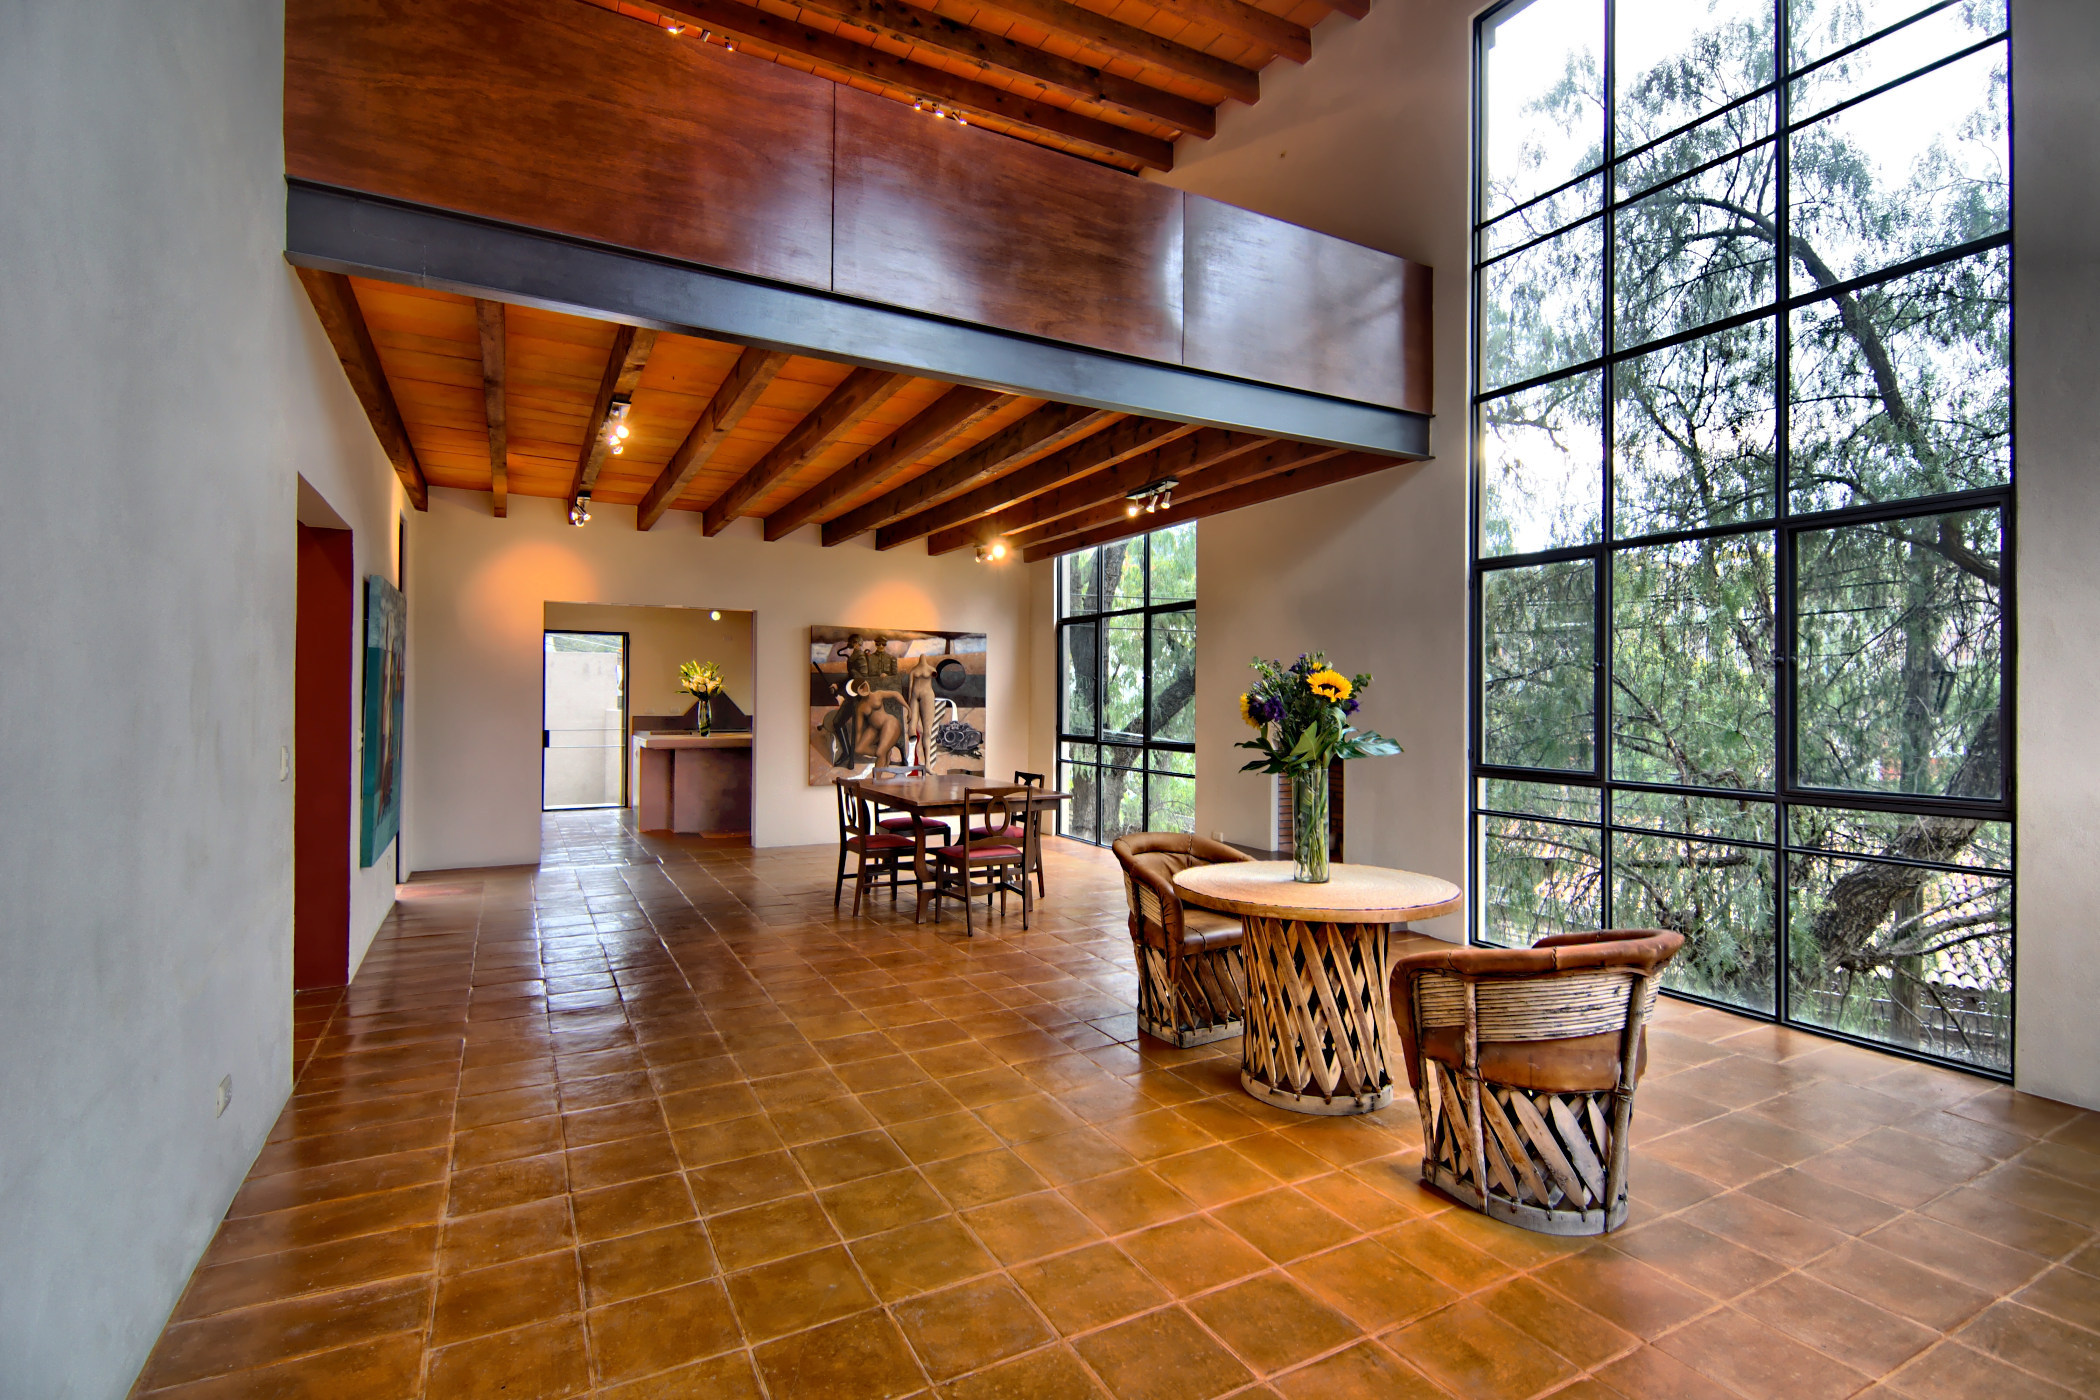 Single Family Home for Sale at Casa Galerias Atascadero San Miguel De Allende, Guanajuato, 37740 Mexico